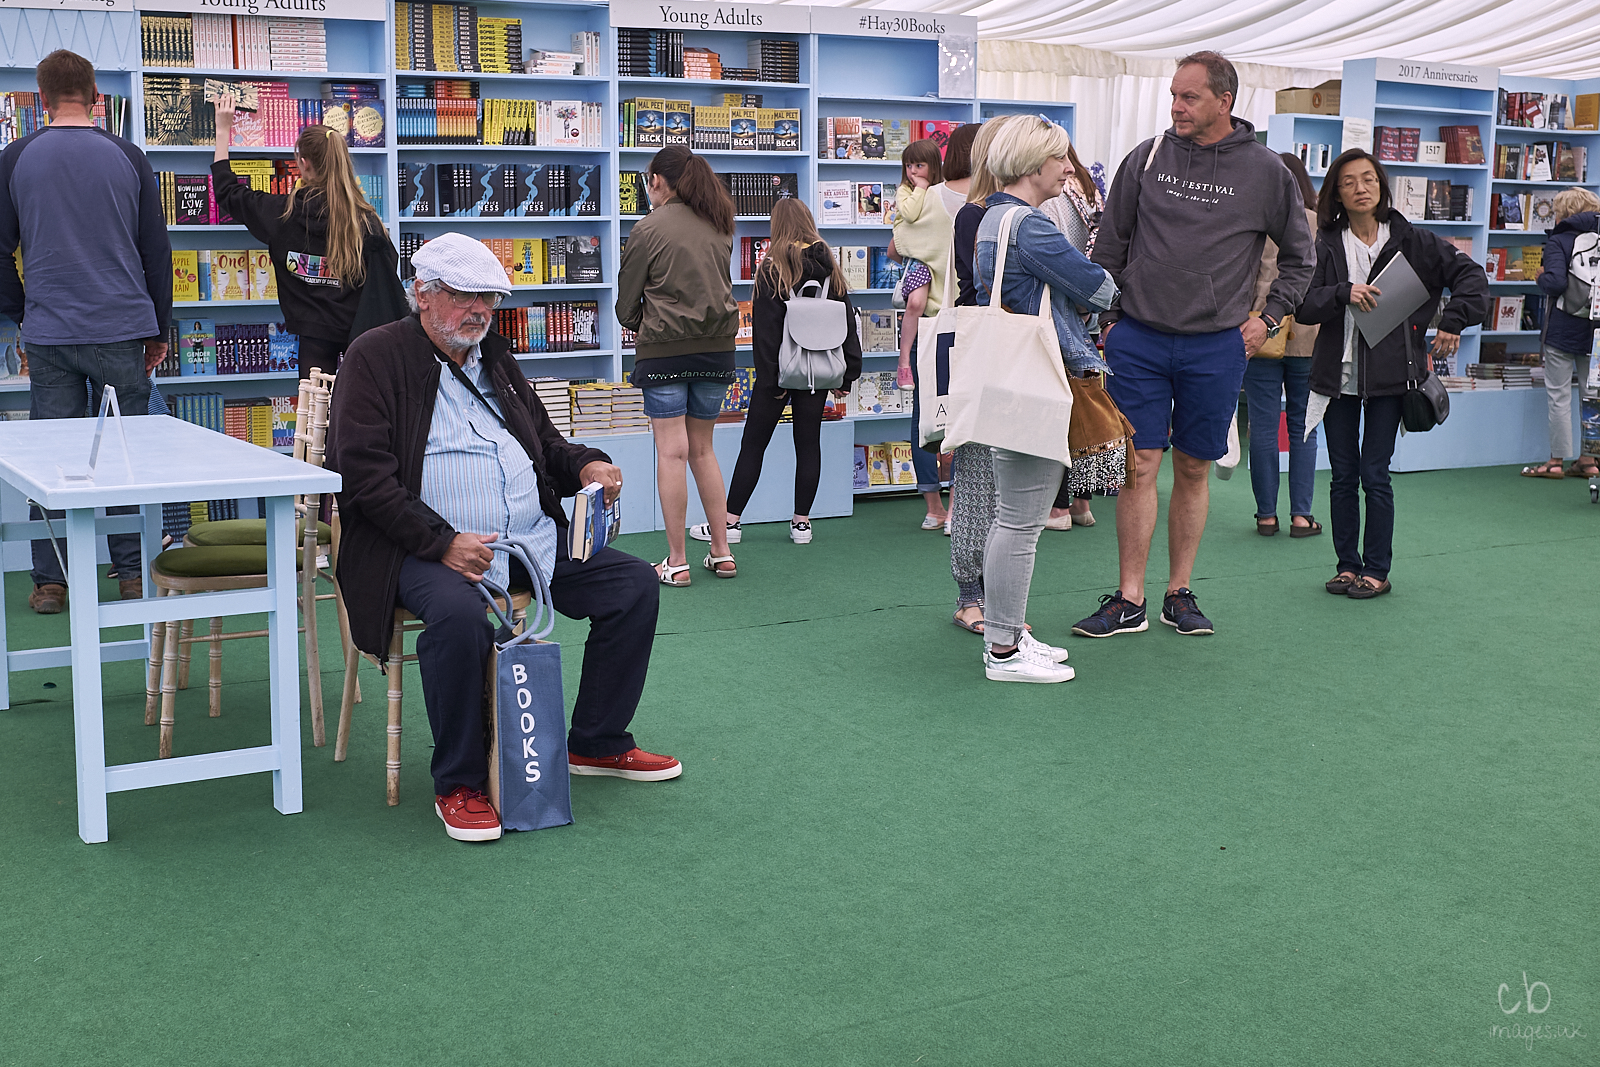 A man with a white cap sits in the book tent at Hay